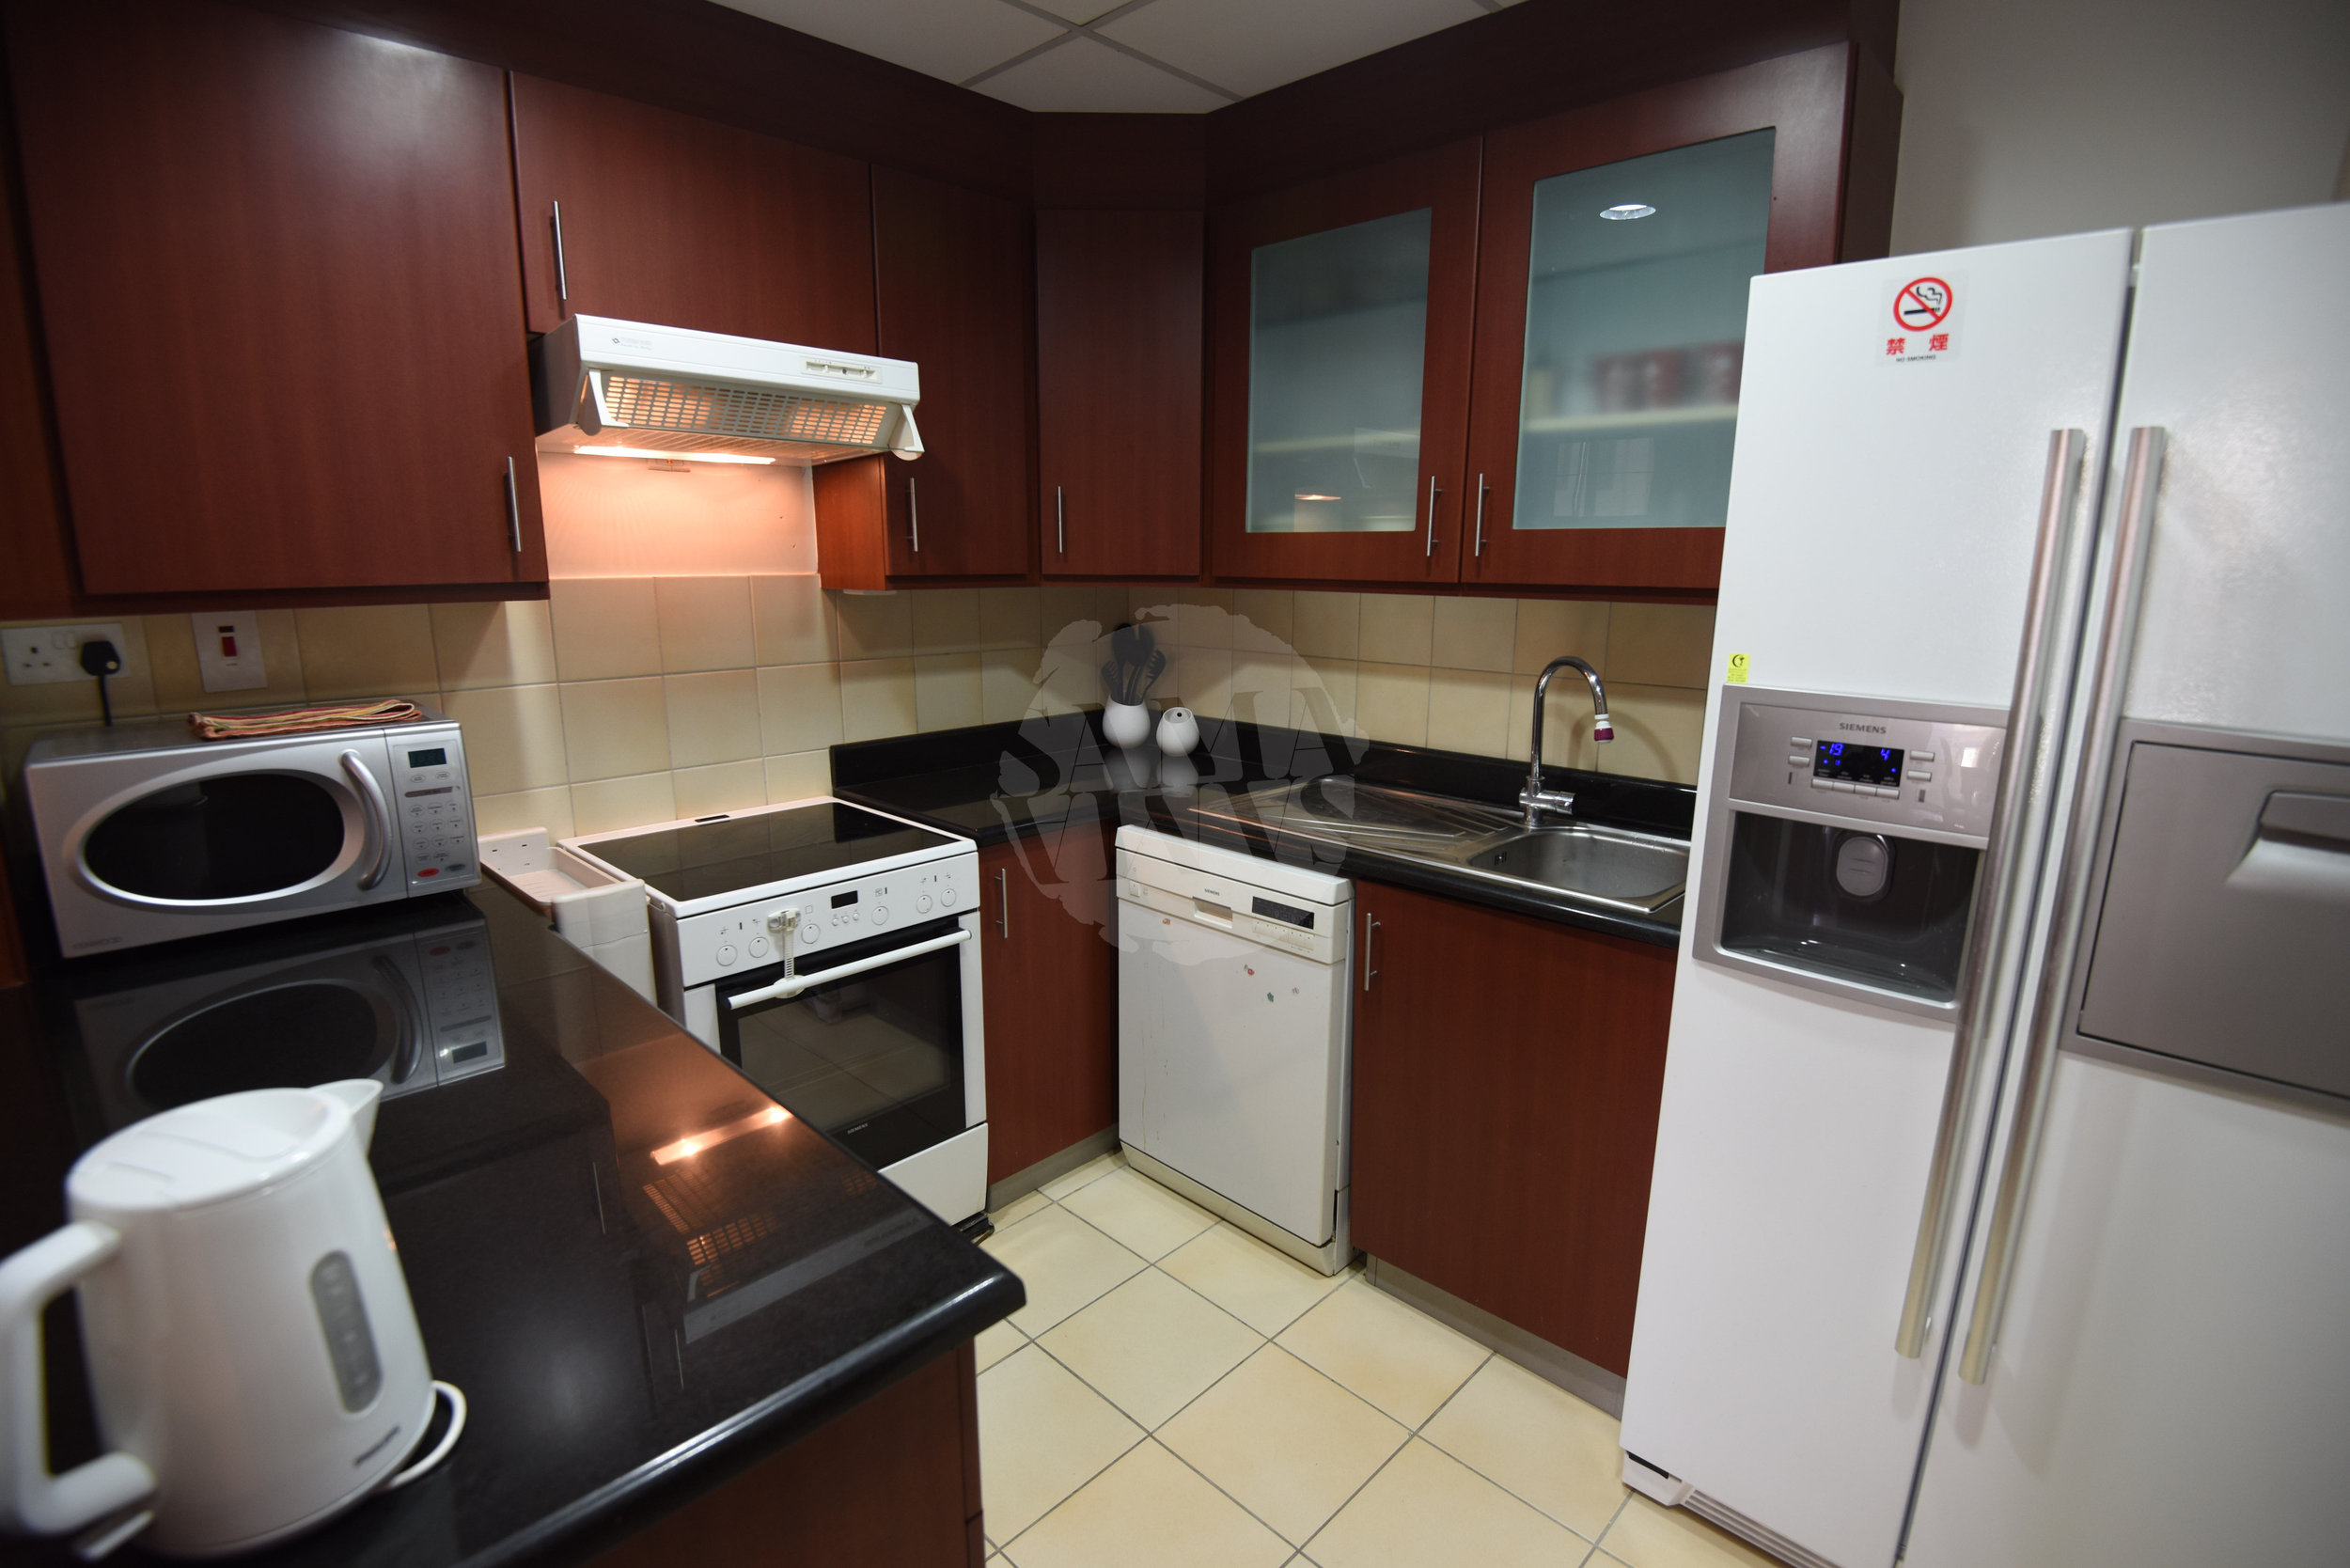 The kitchen has everything you need to make yourself at home including a dishwasher, microwave, fridge-freezer, and all the basic cutlery, crockery and cooking equipment